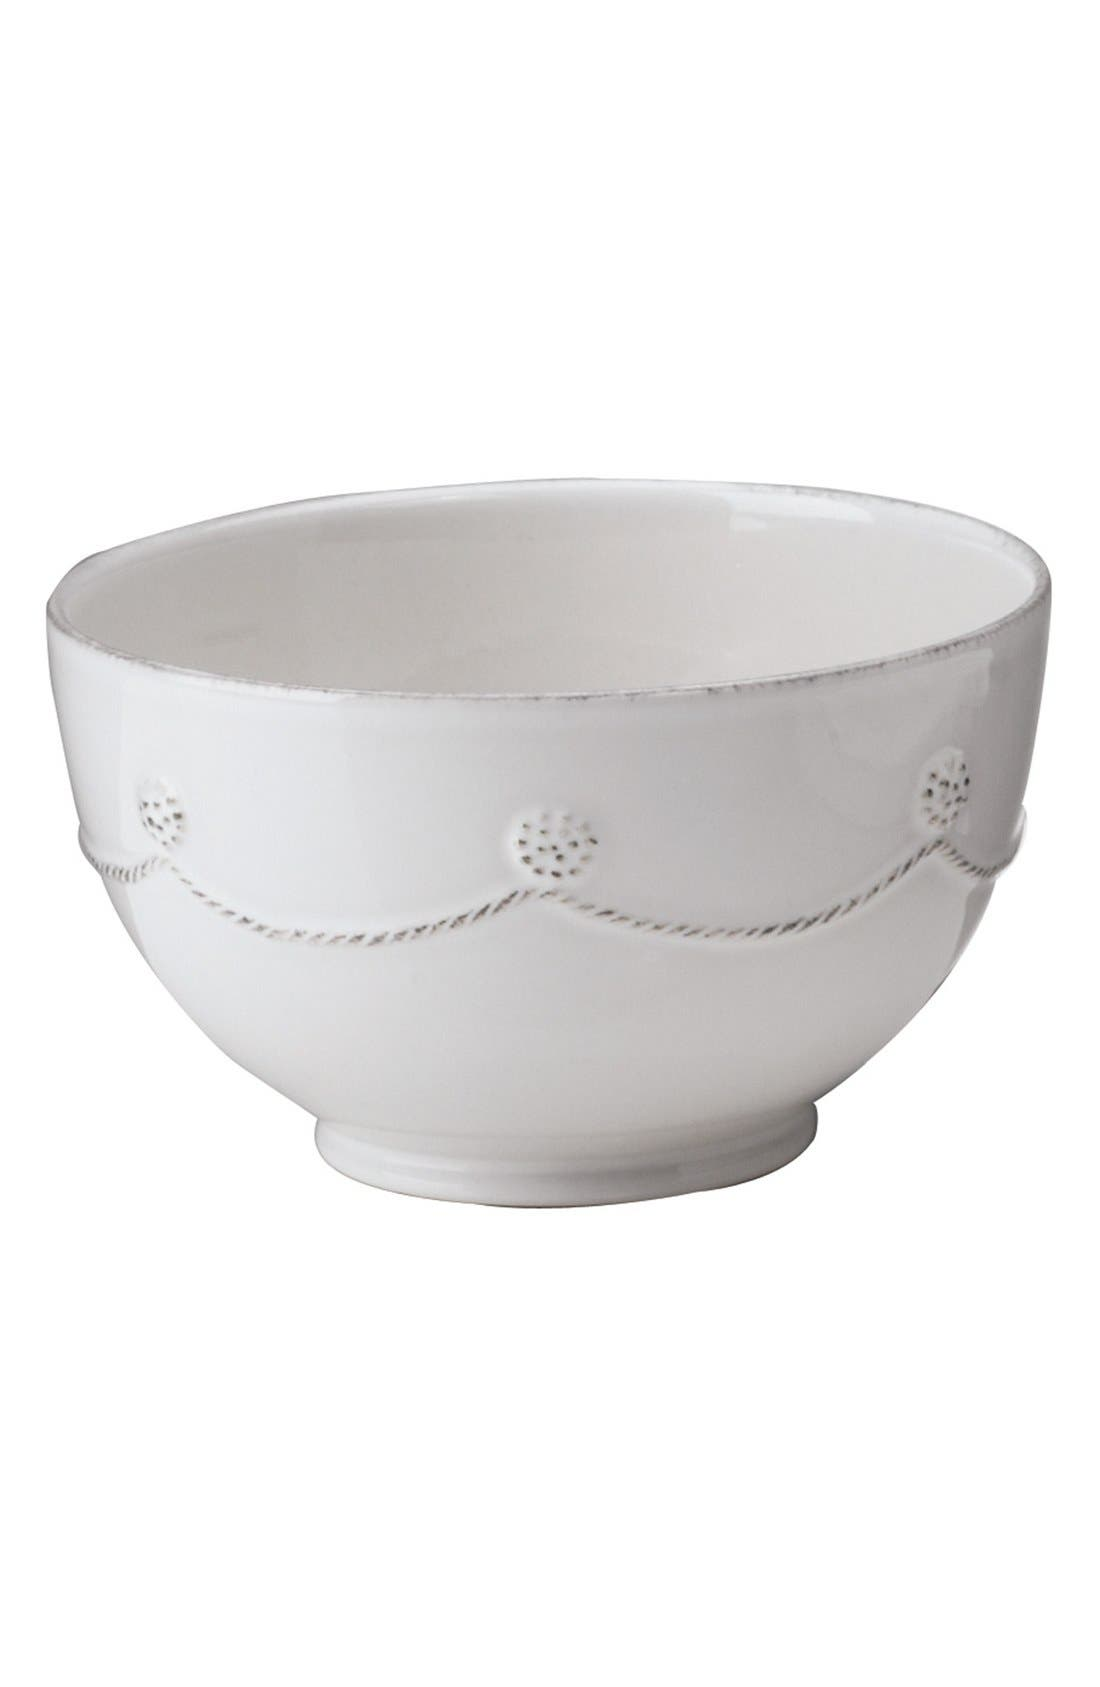 Juliska 'Berry and Thread' Cereal Bowl